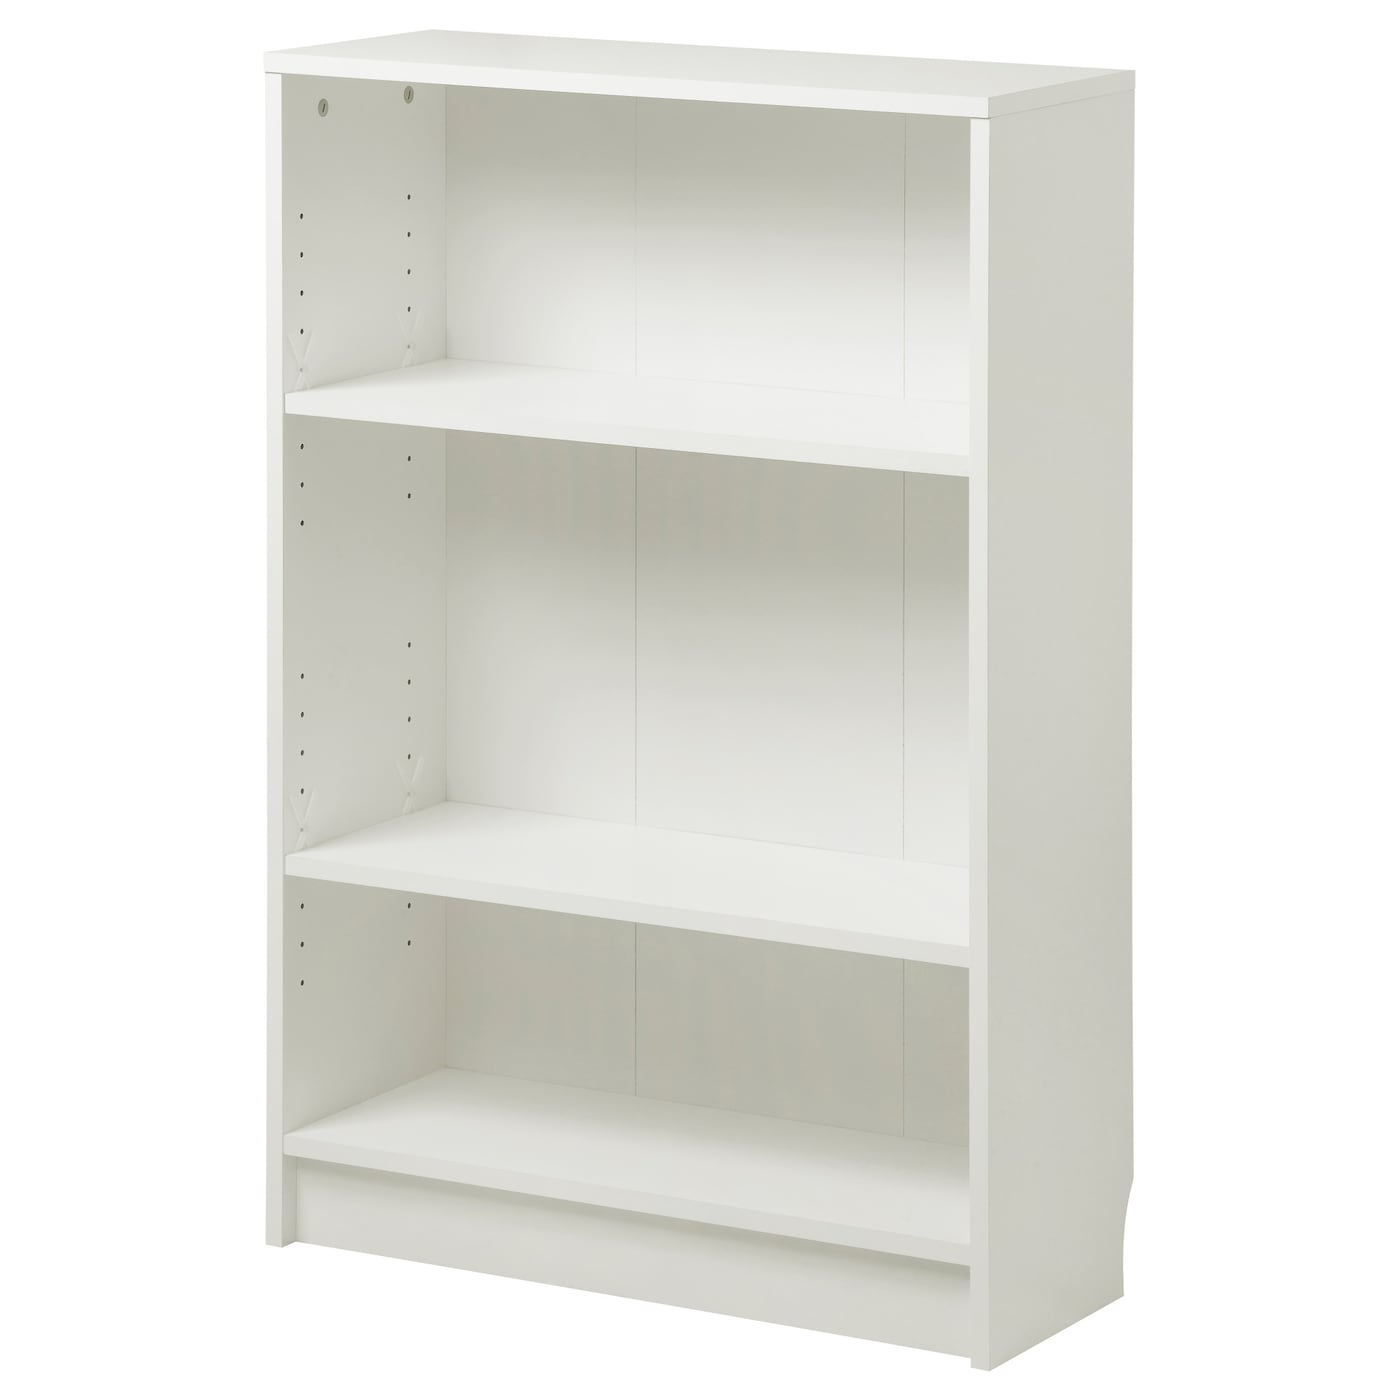 bookcases white bookcases ikea. Black Bedroom Furniture Sets. Home Design Ideas